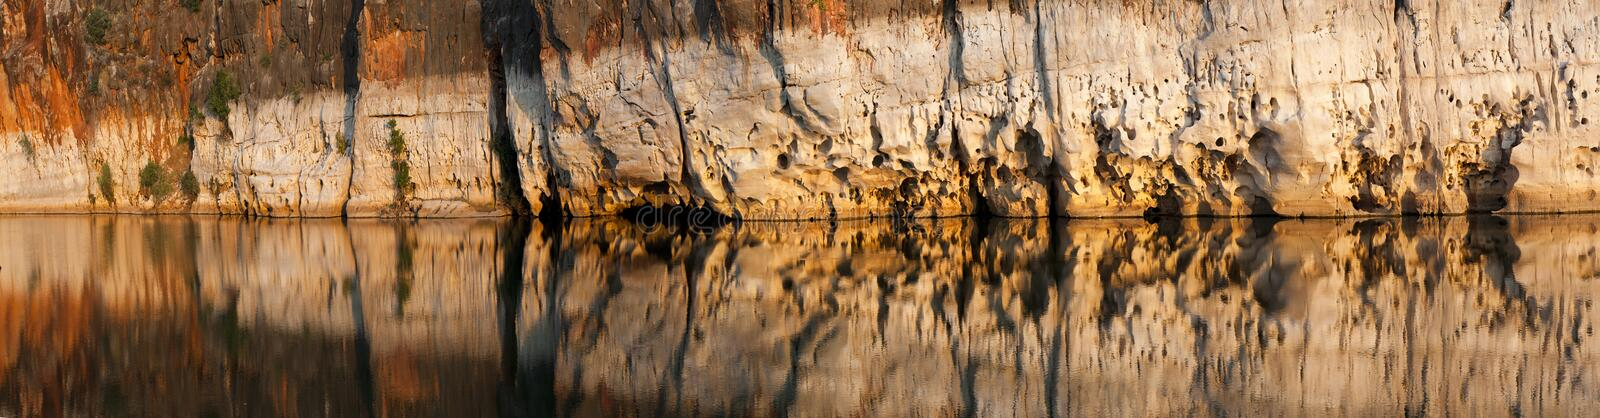 Fitzroy Rive and Geikie Gorge. The Fitzroy River is located in the West Kimberley region of Western Australia. Geikie Gorge National Park is a national park in stock photos